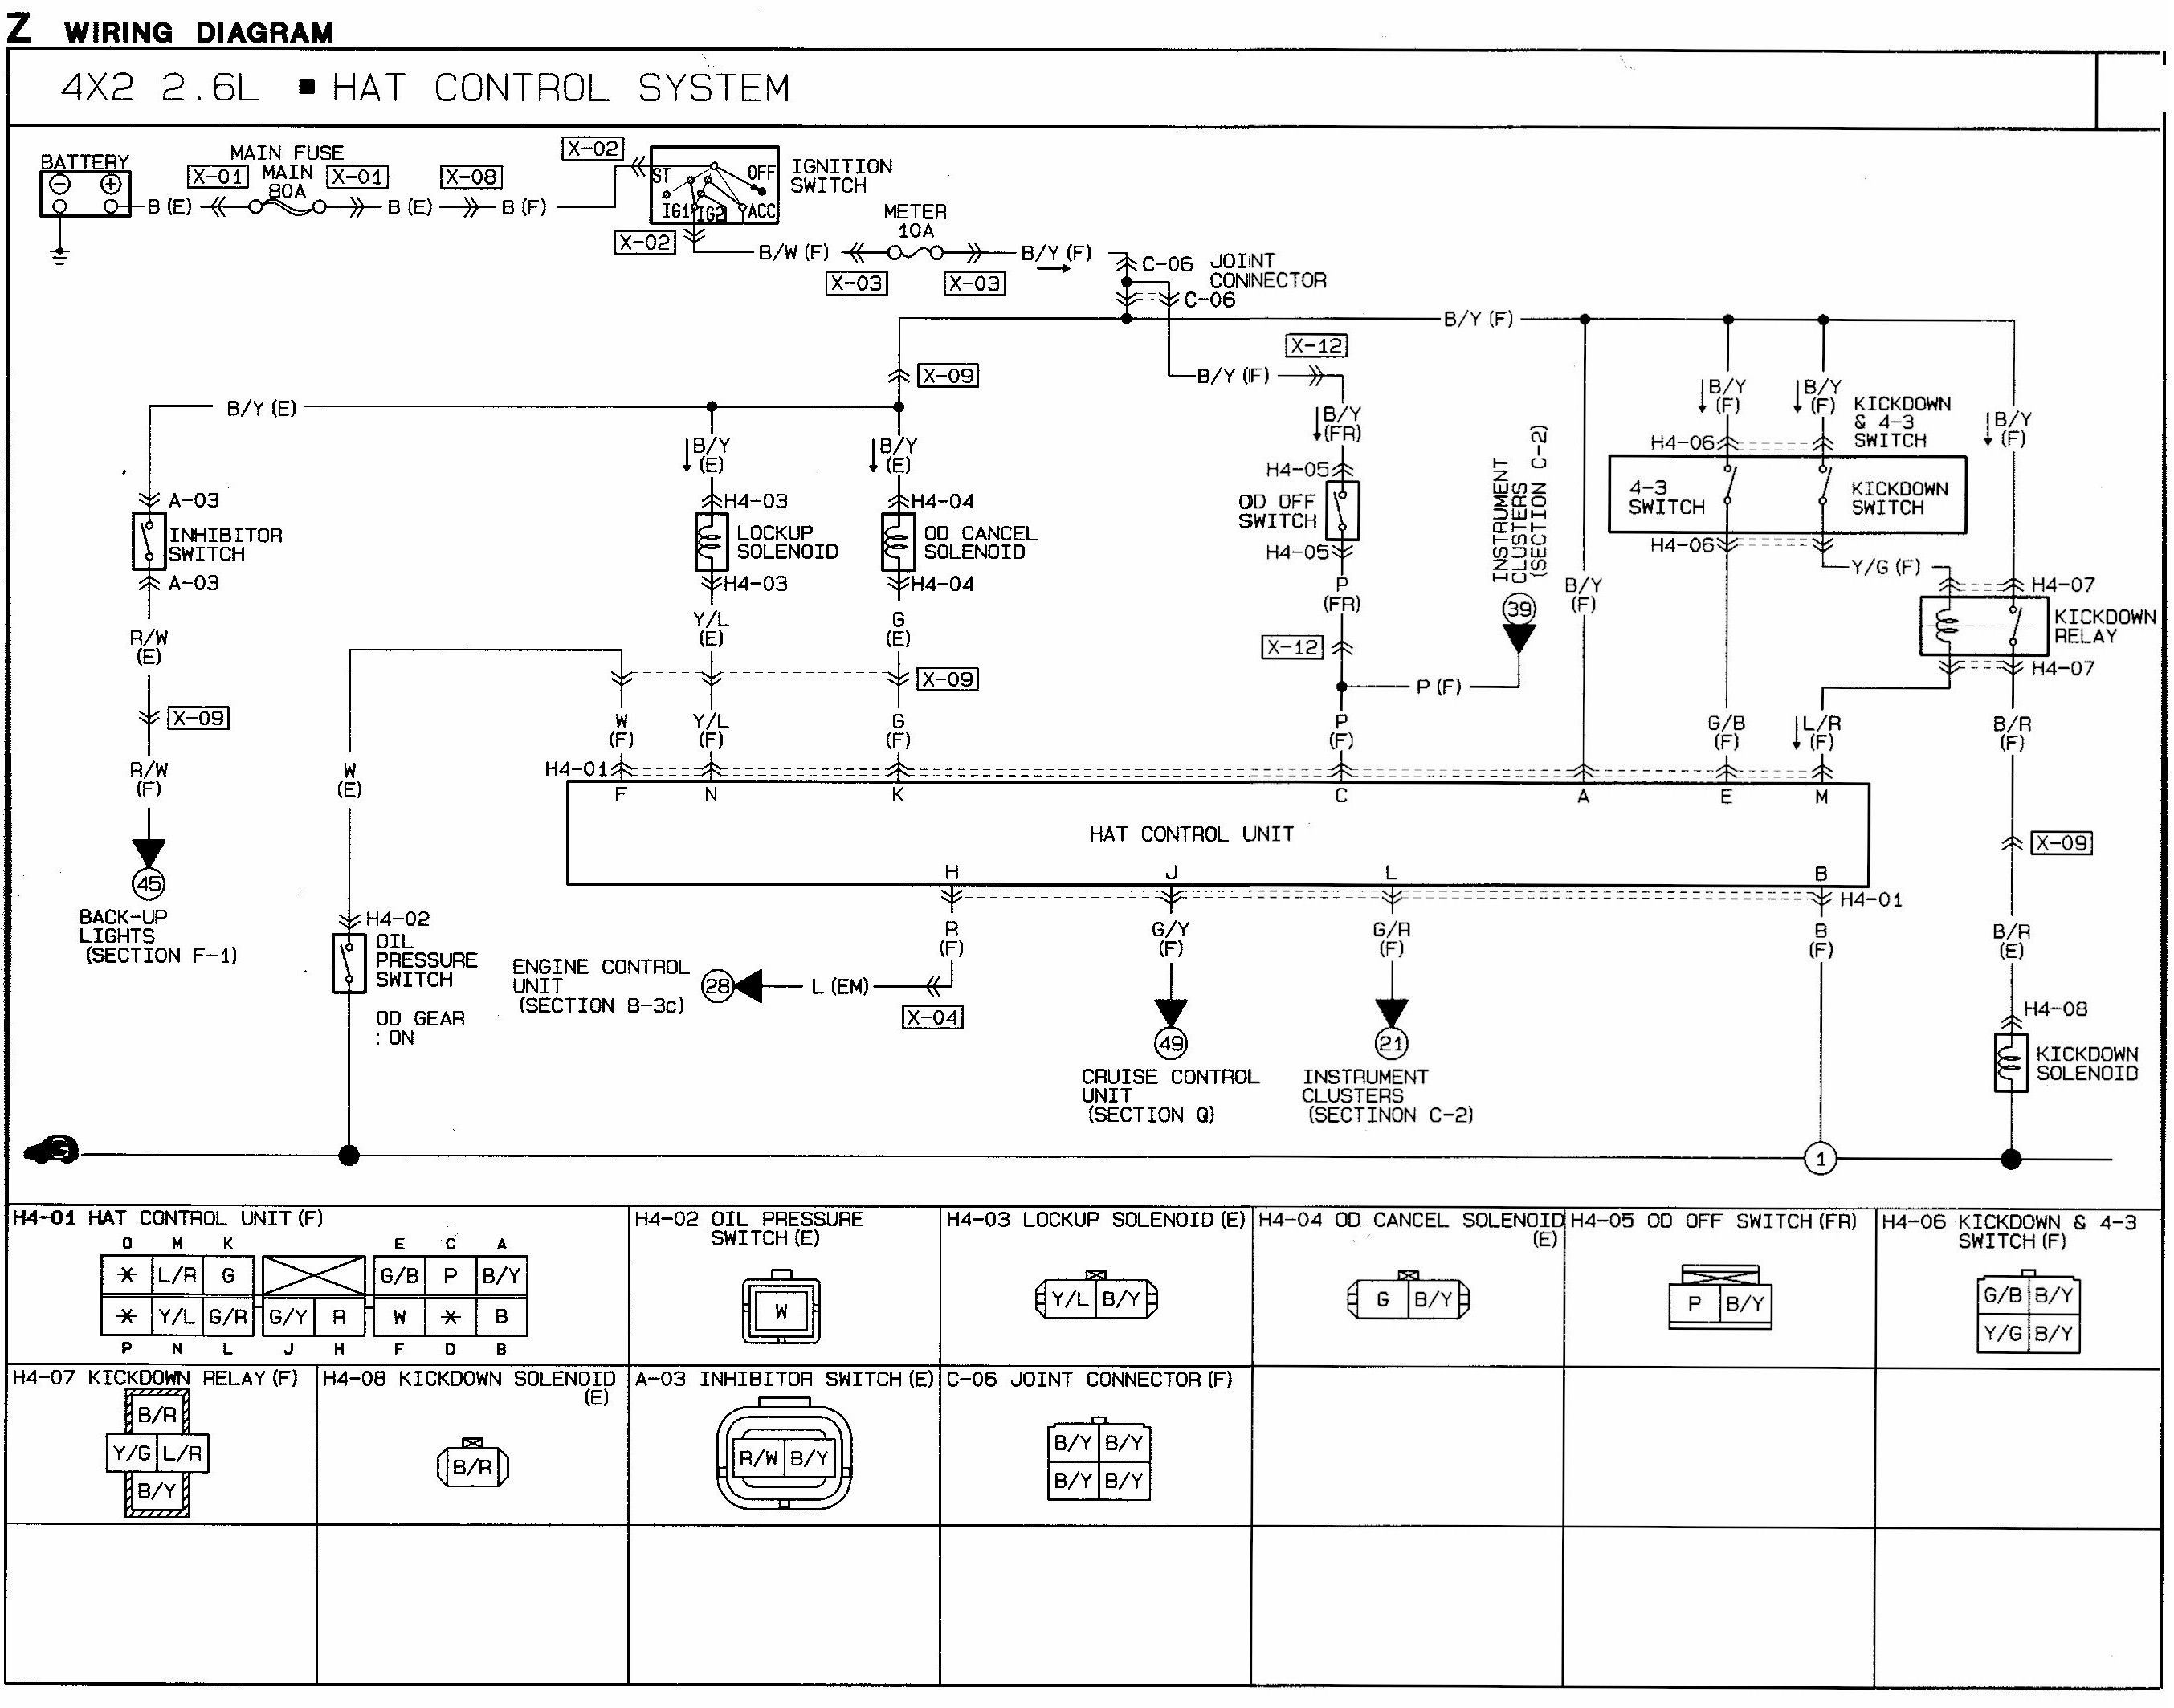 New 1998 Jeep Cherokee Headlight Wiring Diagram | Jeep grand cherokee, Jeep  grand, Trailer wiring diagram | 1998 Jeep Cherokee Transmission Wiring Colors |  | Pinterest